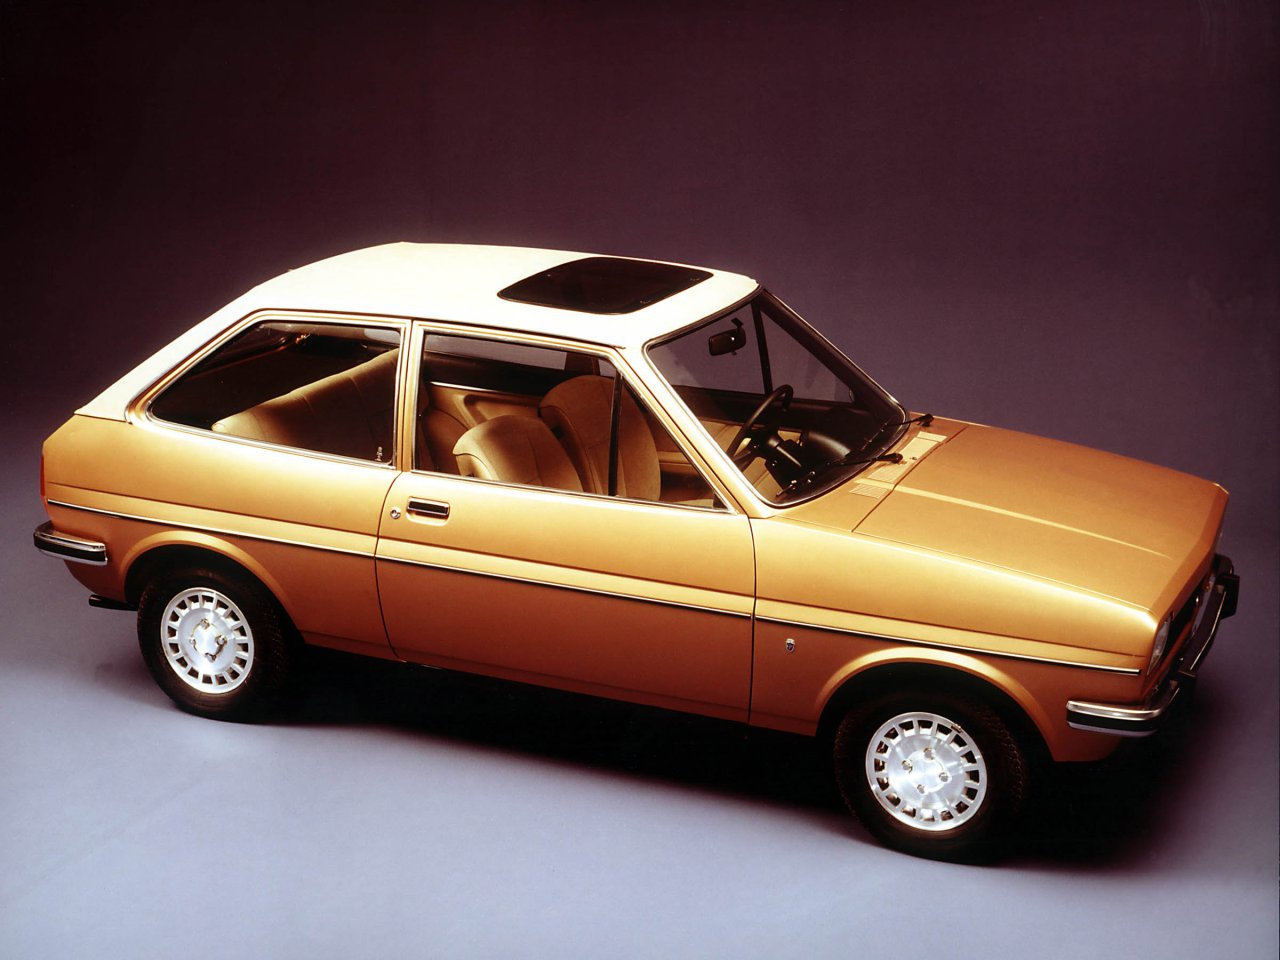 1977_ford_fiesta-pic-3331